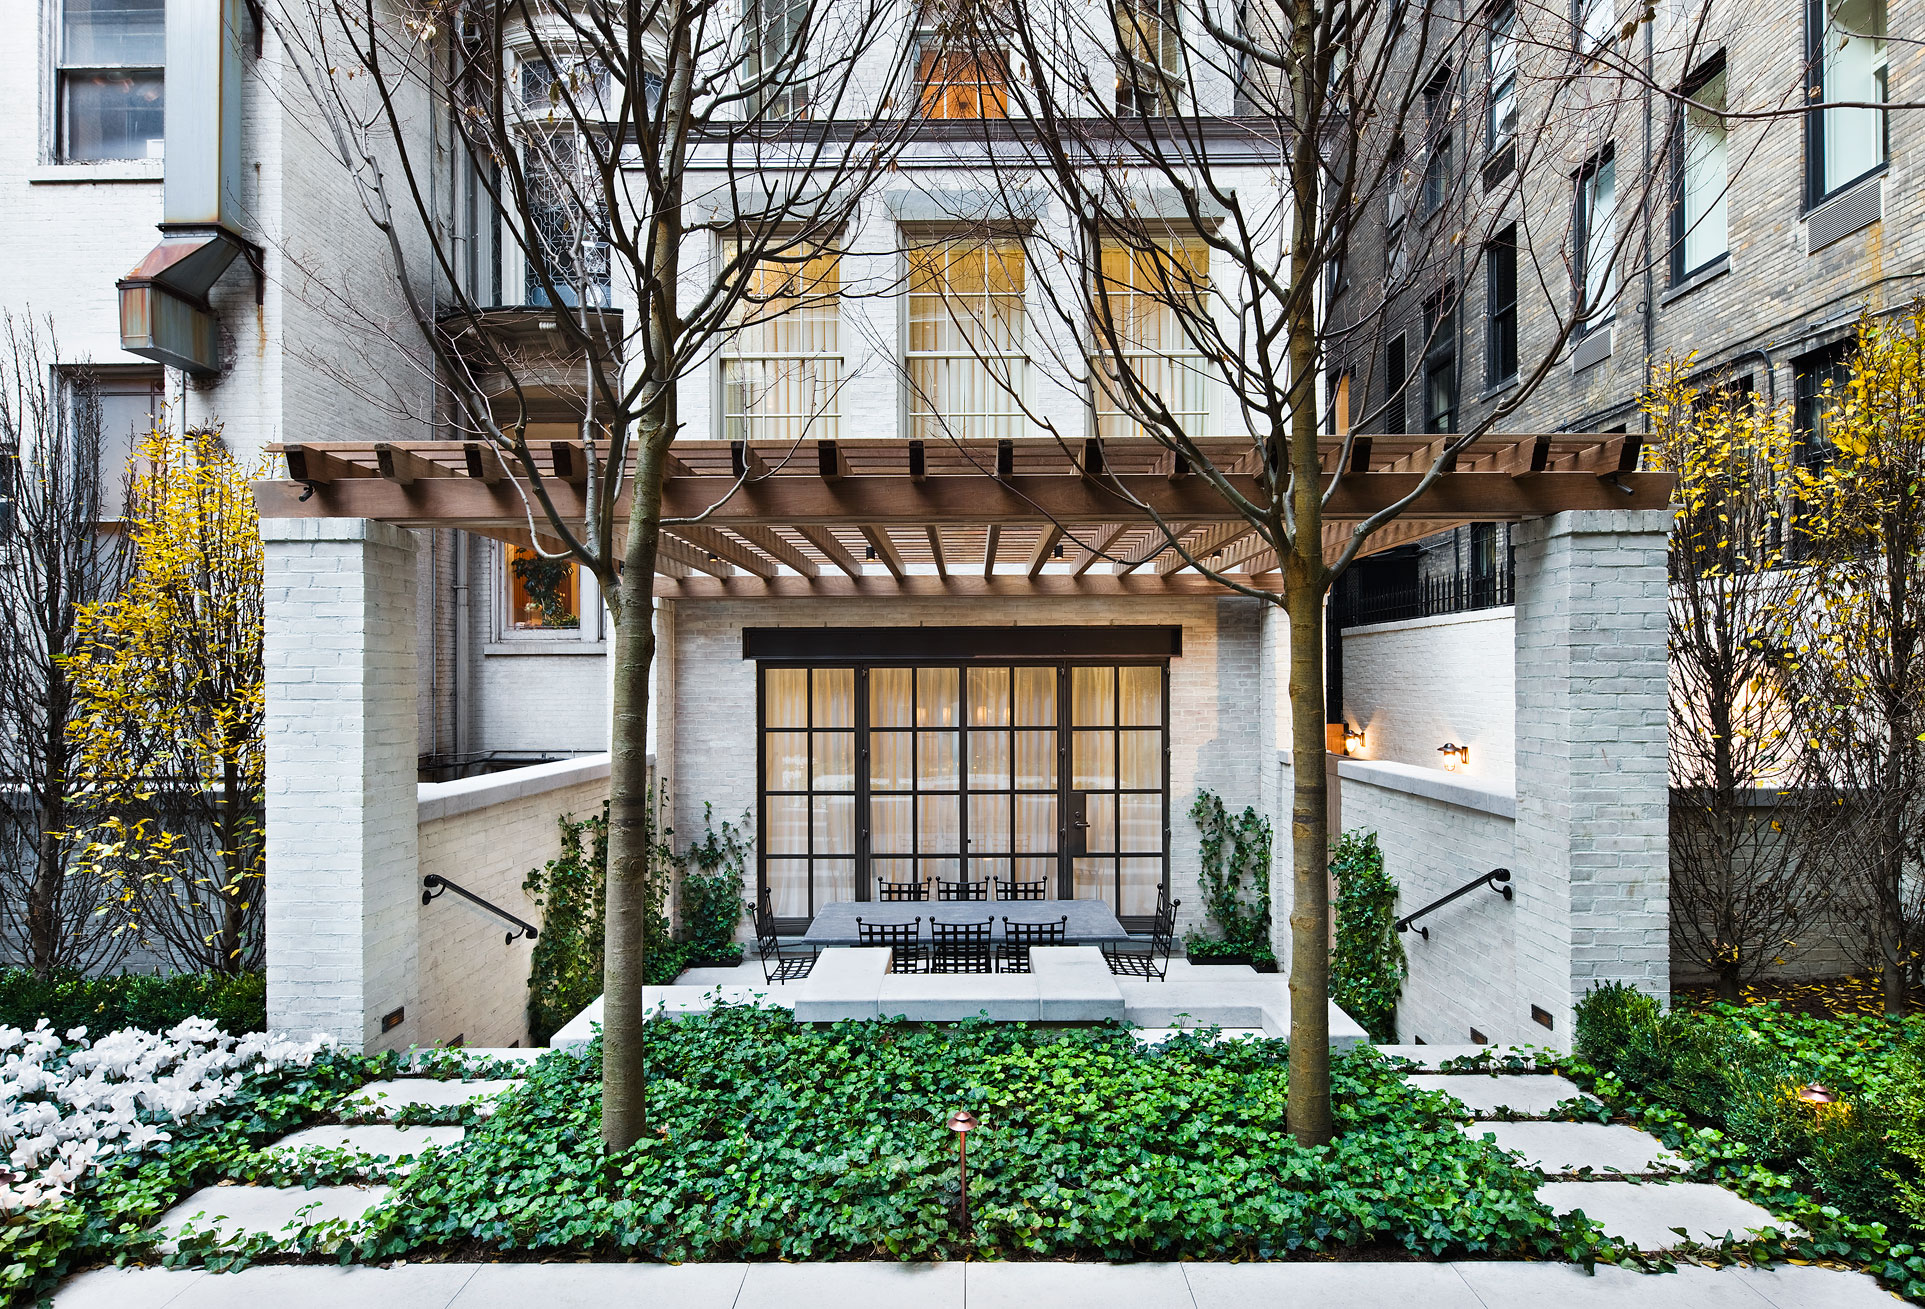 Fifth Avenue Townhouse